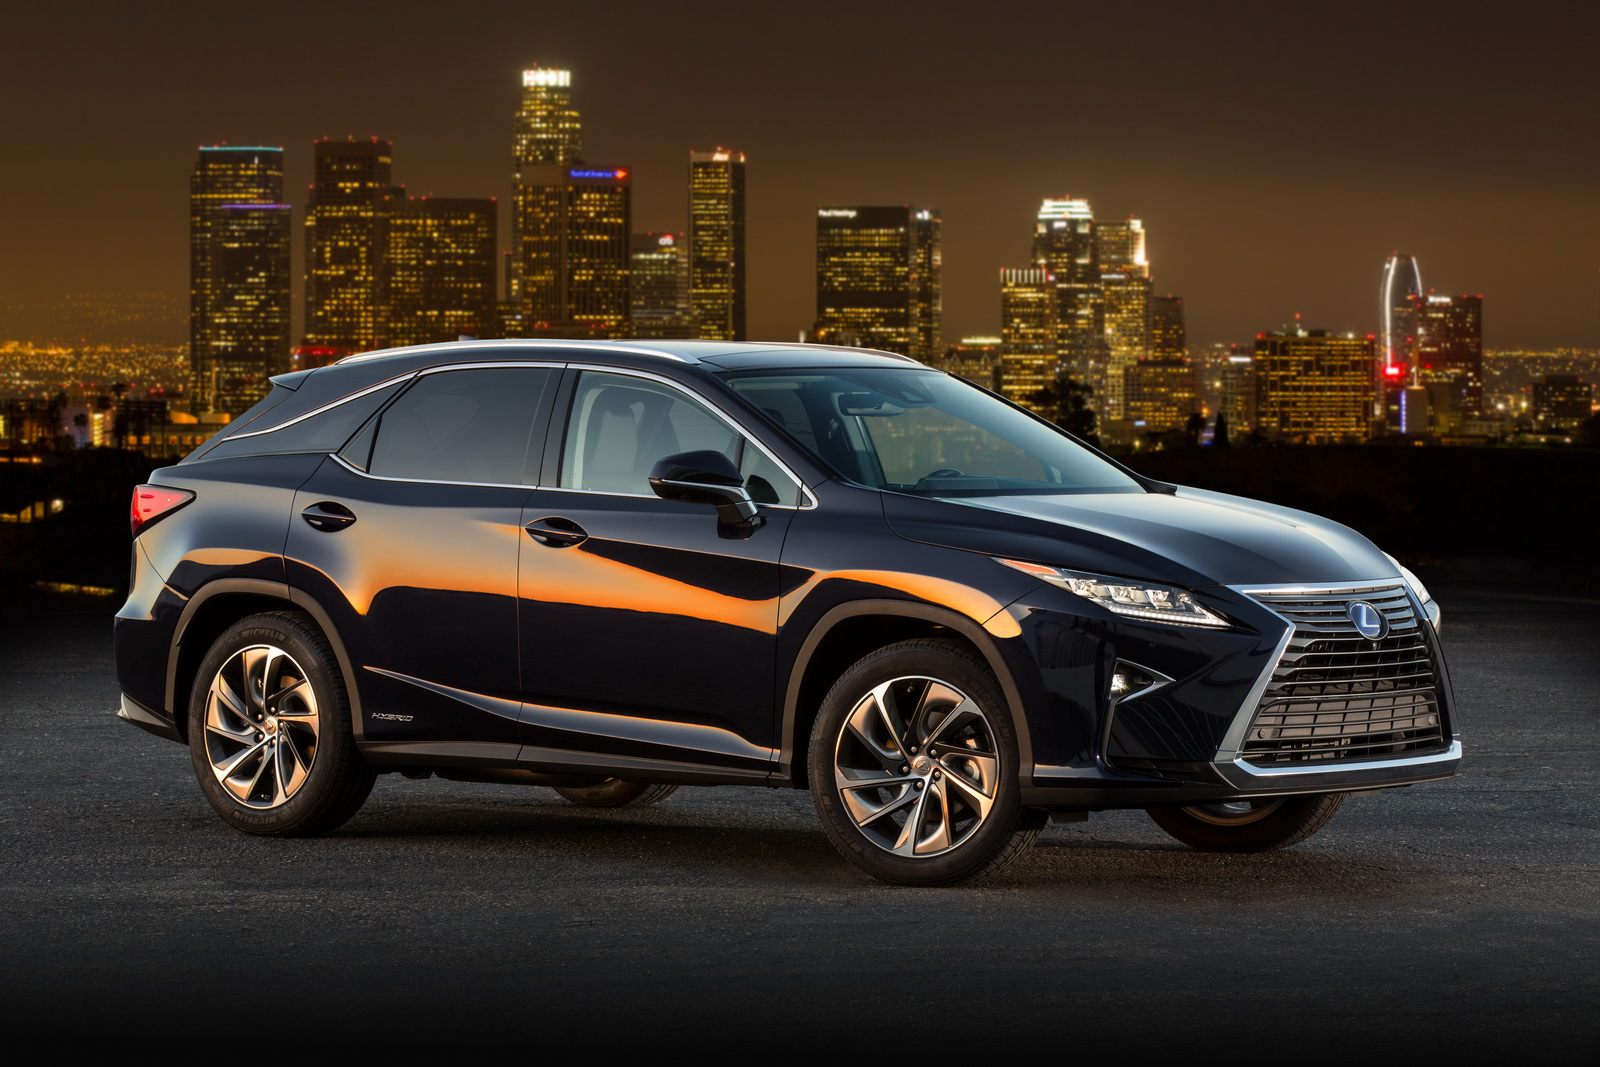 new lexus rx uk pricing and full range announced starts at 39 995 carscoops. Black Bedroom Furniture Sets. Home Design Ideas